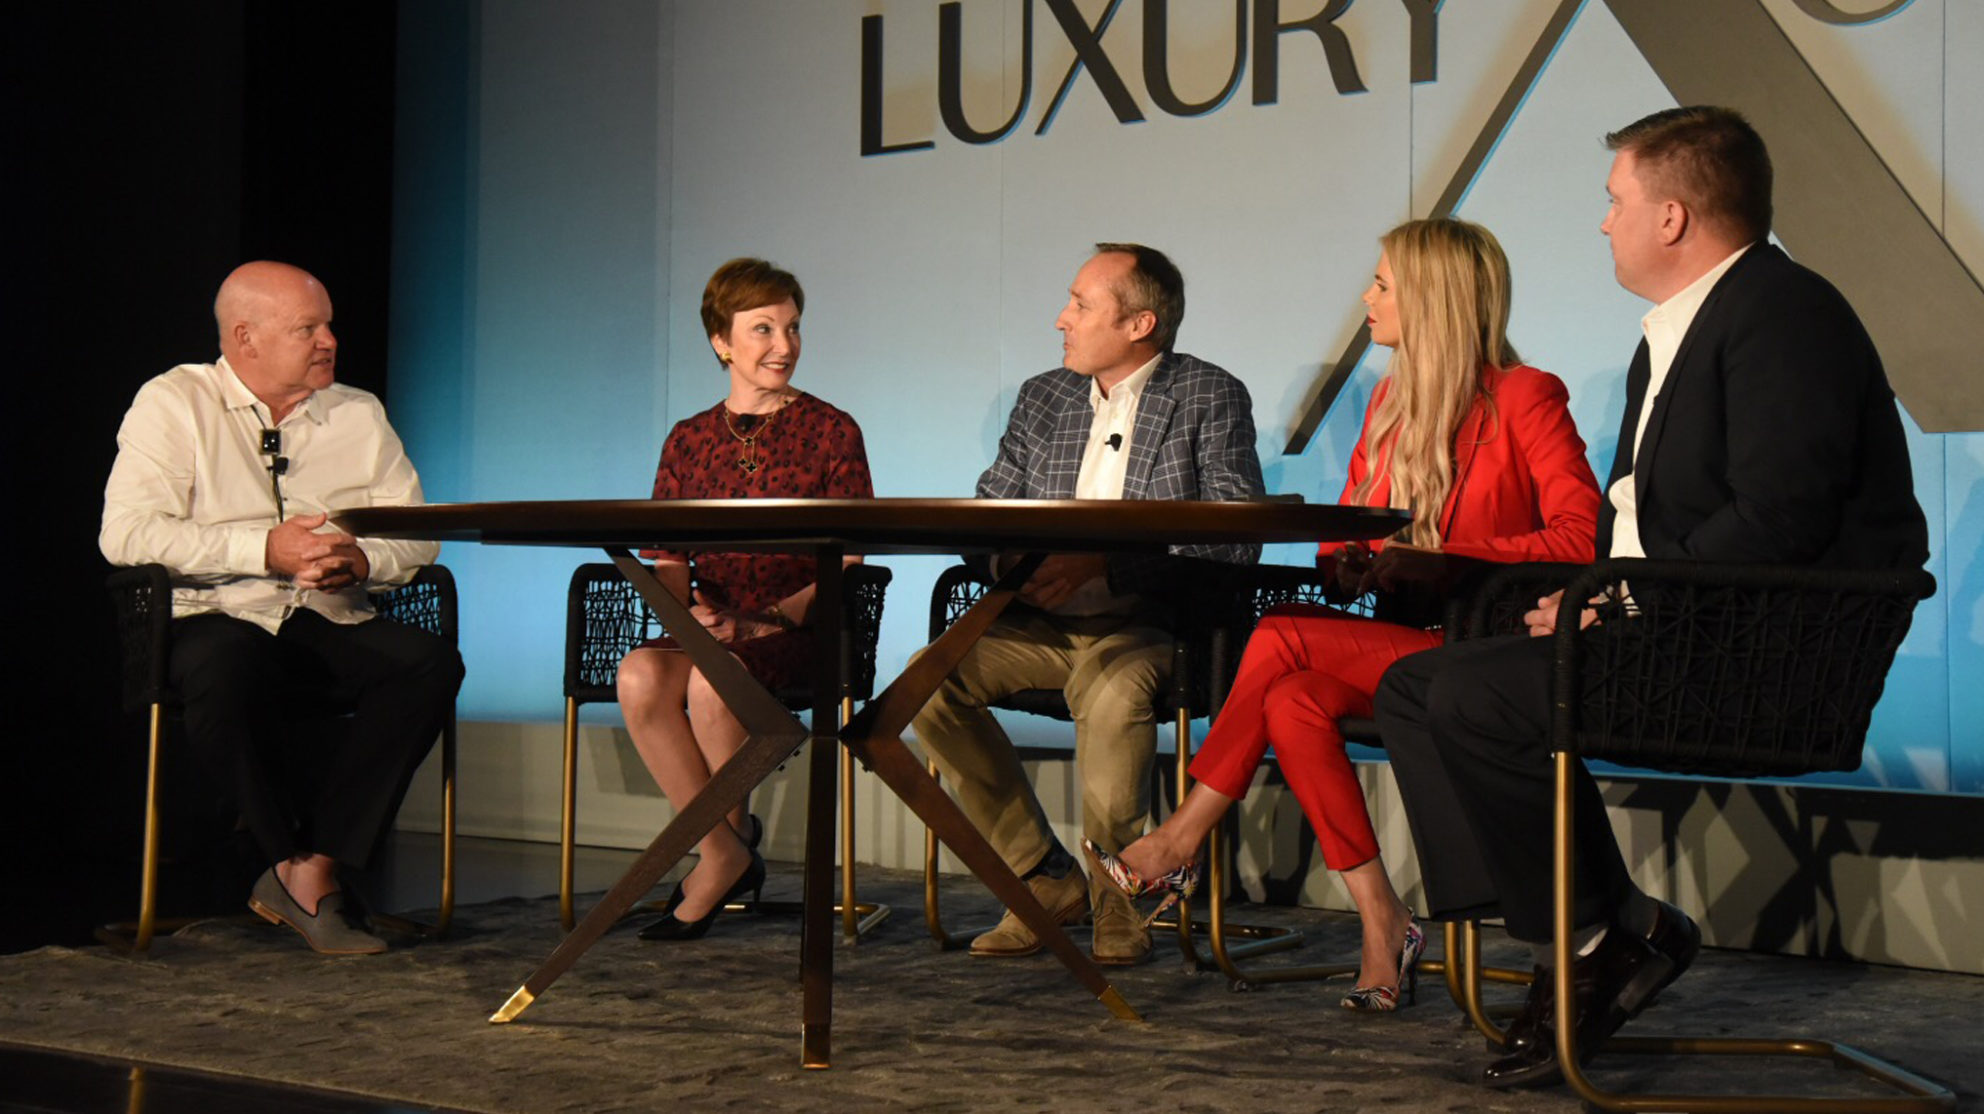 WATCH: How to Serve as Your Client's Real Estate Wealth Advisor